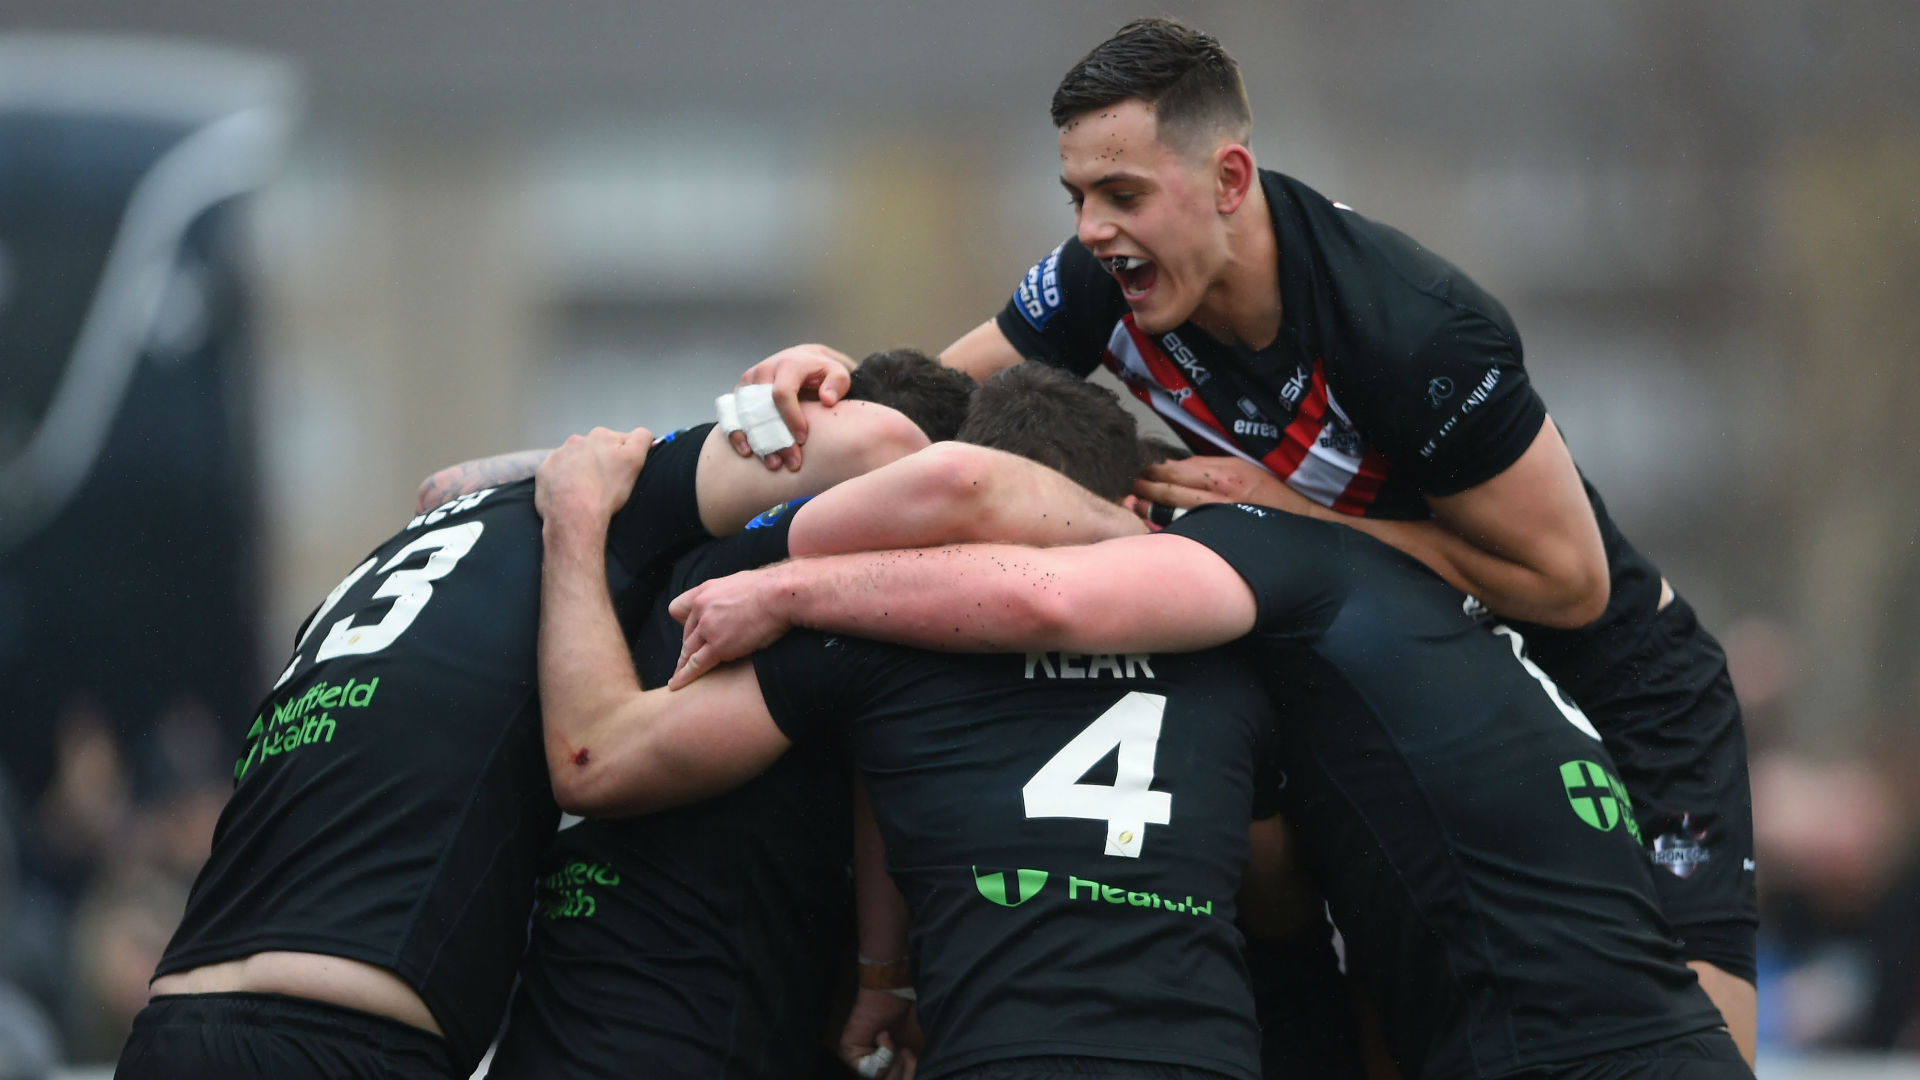 St Helens have only lost three games all year in Super League, but two of those defeats have come at London Broncos.